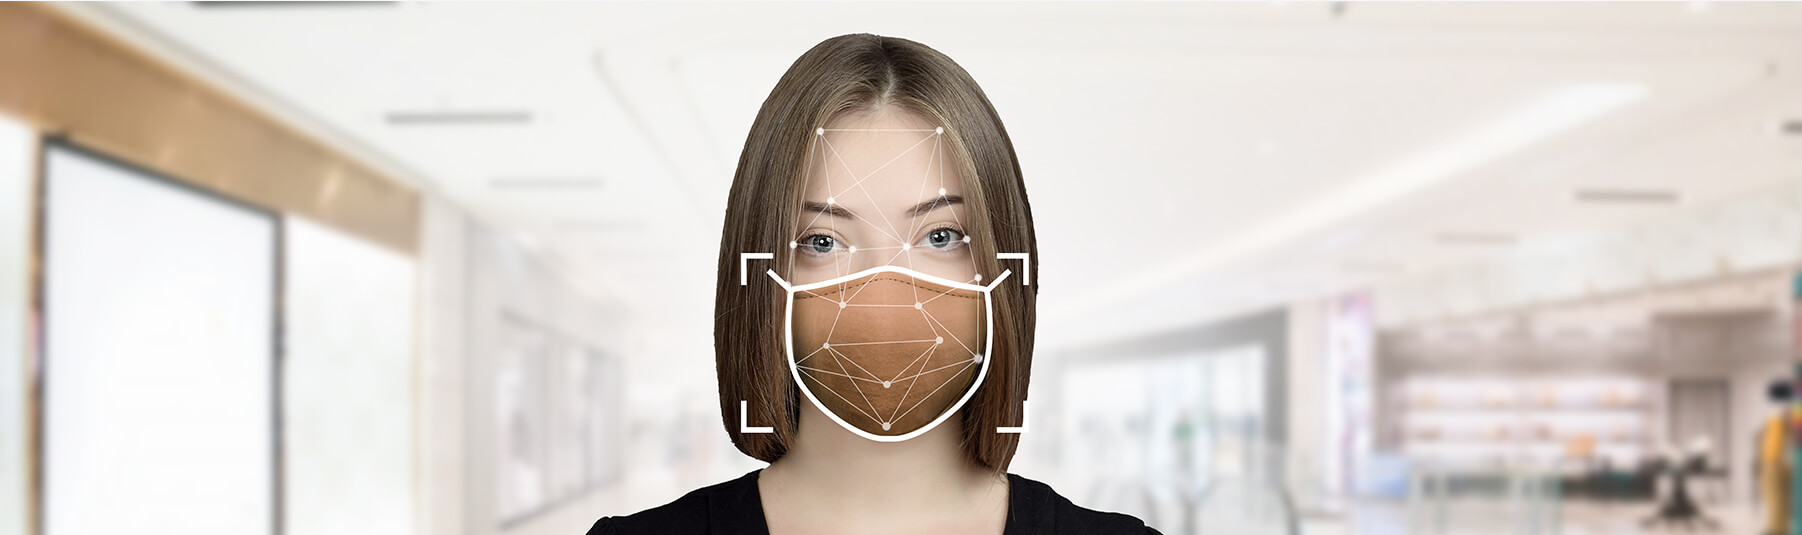 Face mask detection system